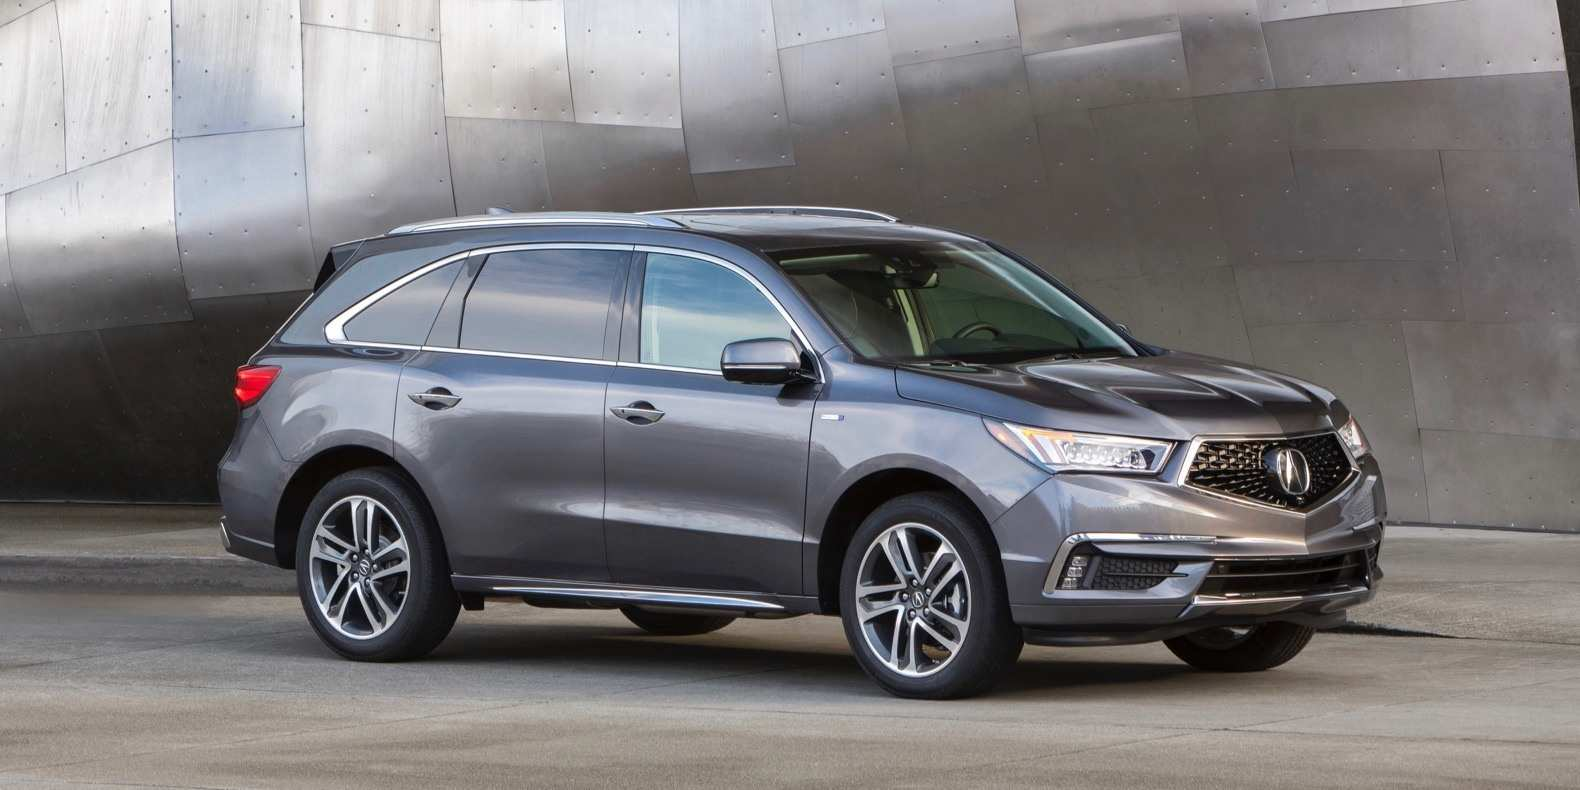 78 Great Best Acura Mdx 2019 Release Date Price And Review New Concept with Best Acura Mdx 2019 Release Date Price And Review